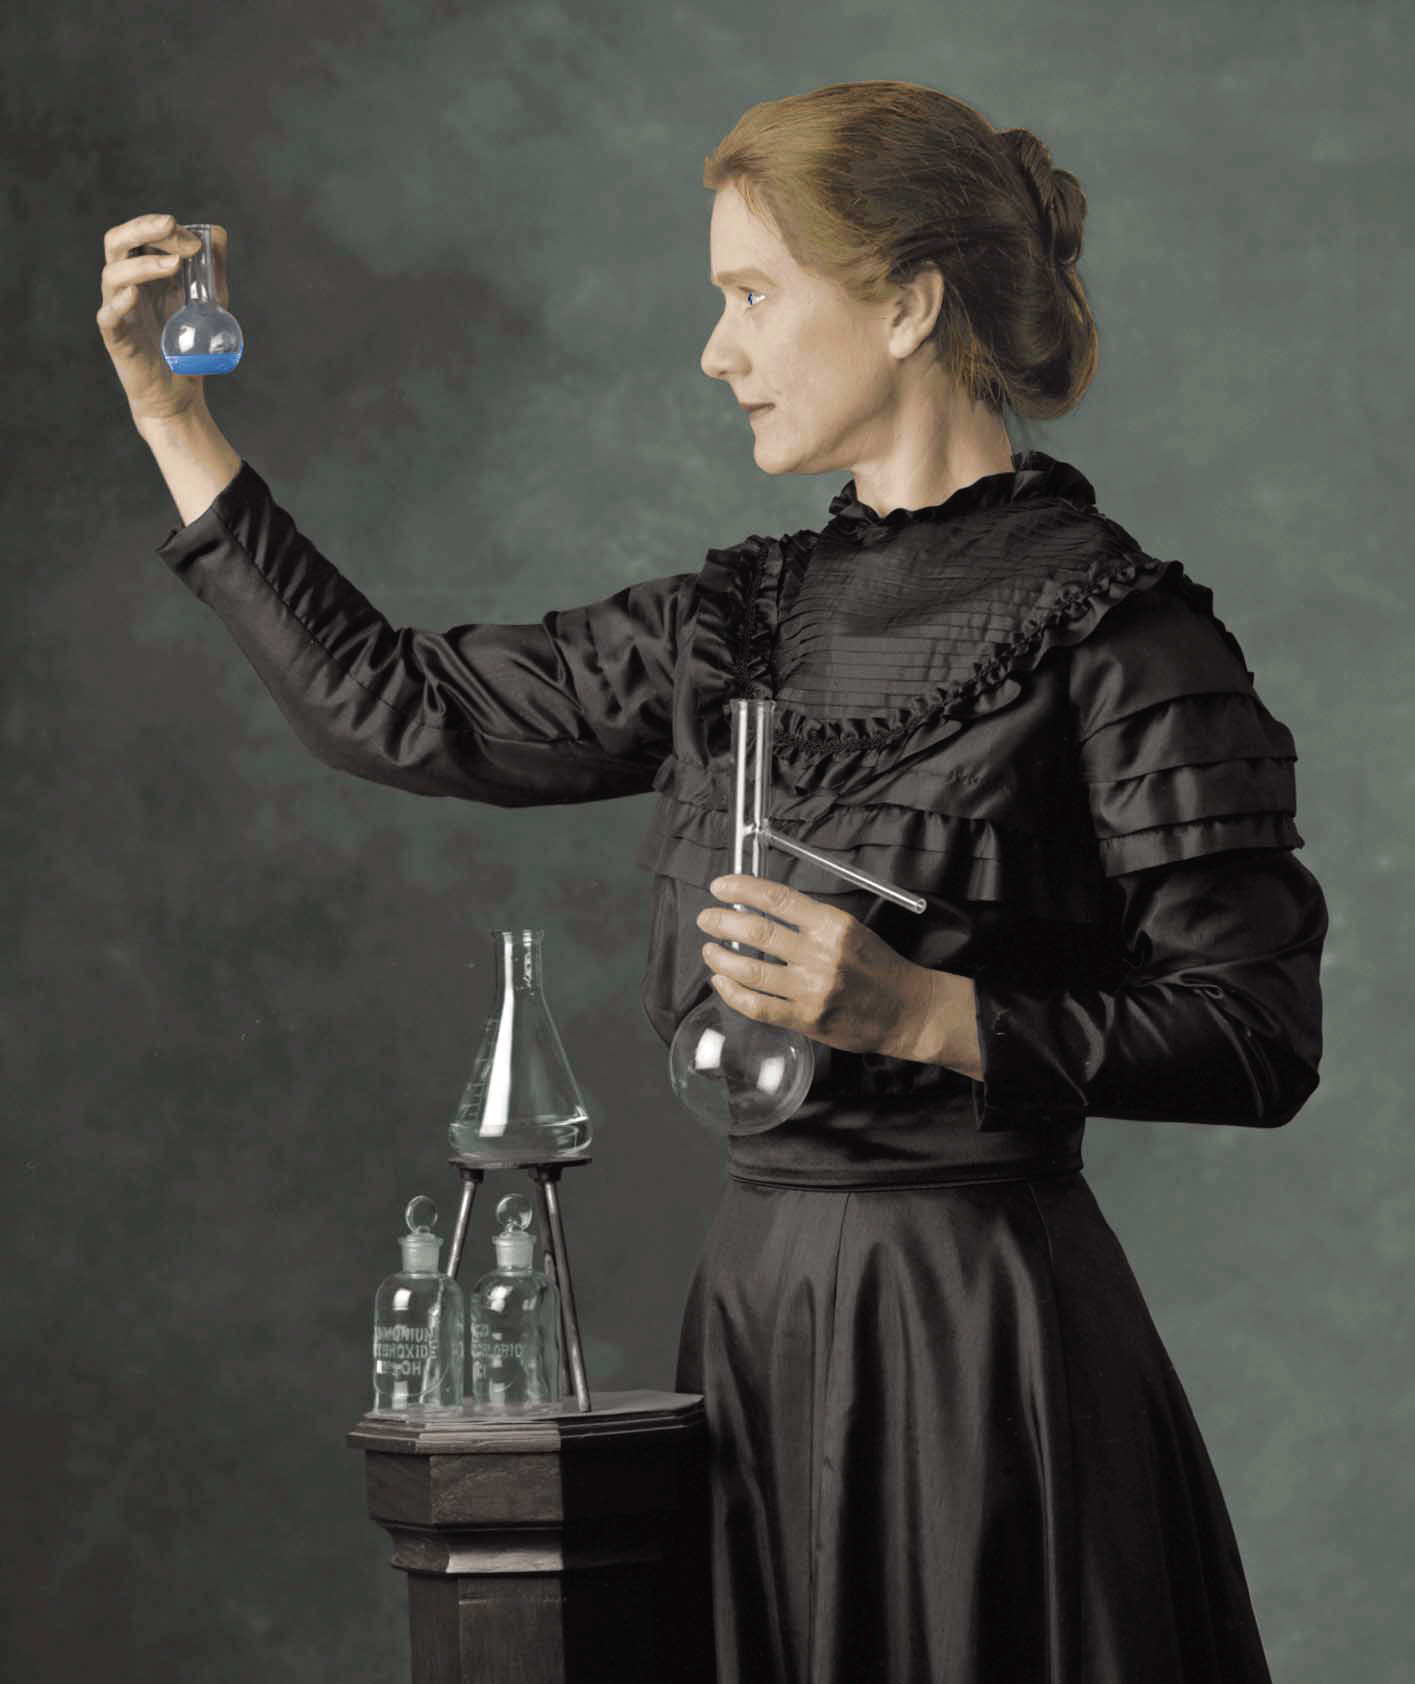 http://ritsmas.files.wordpress.com/2011/02/marie_curie1.jpg